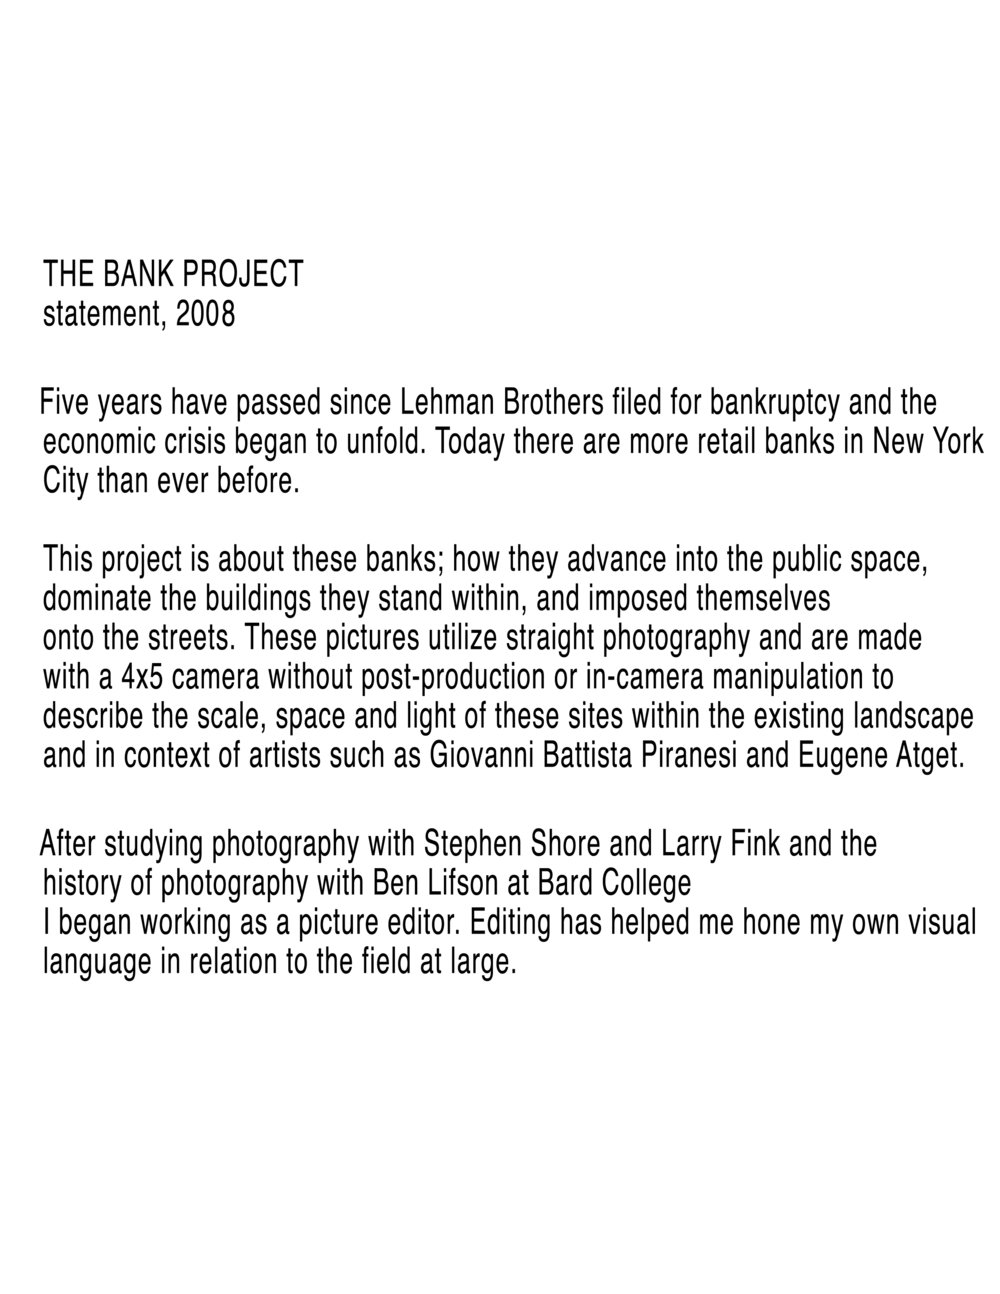 The Bank Project about.jpg